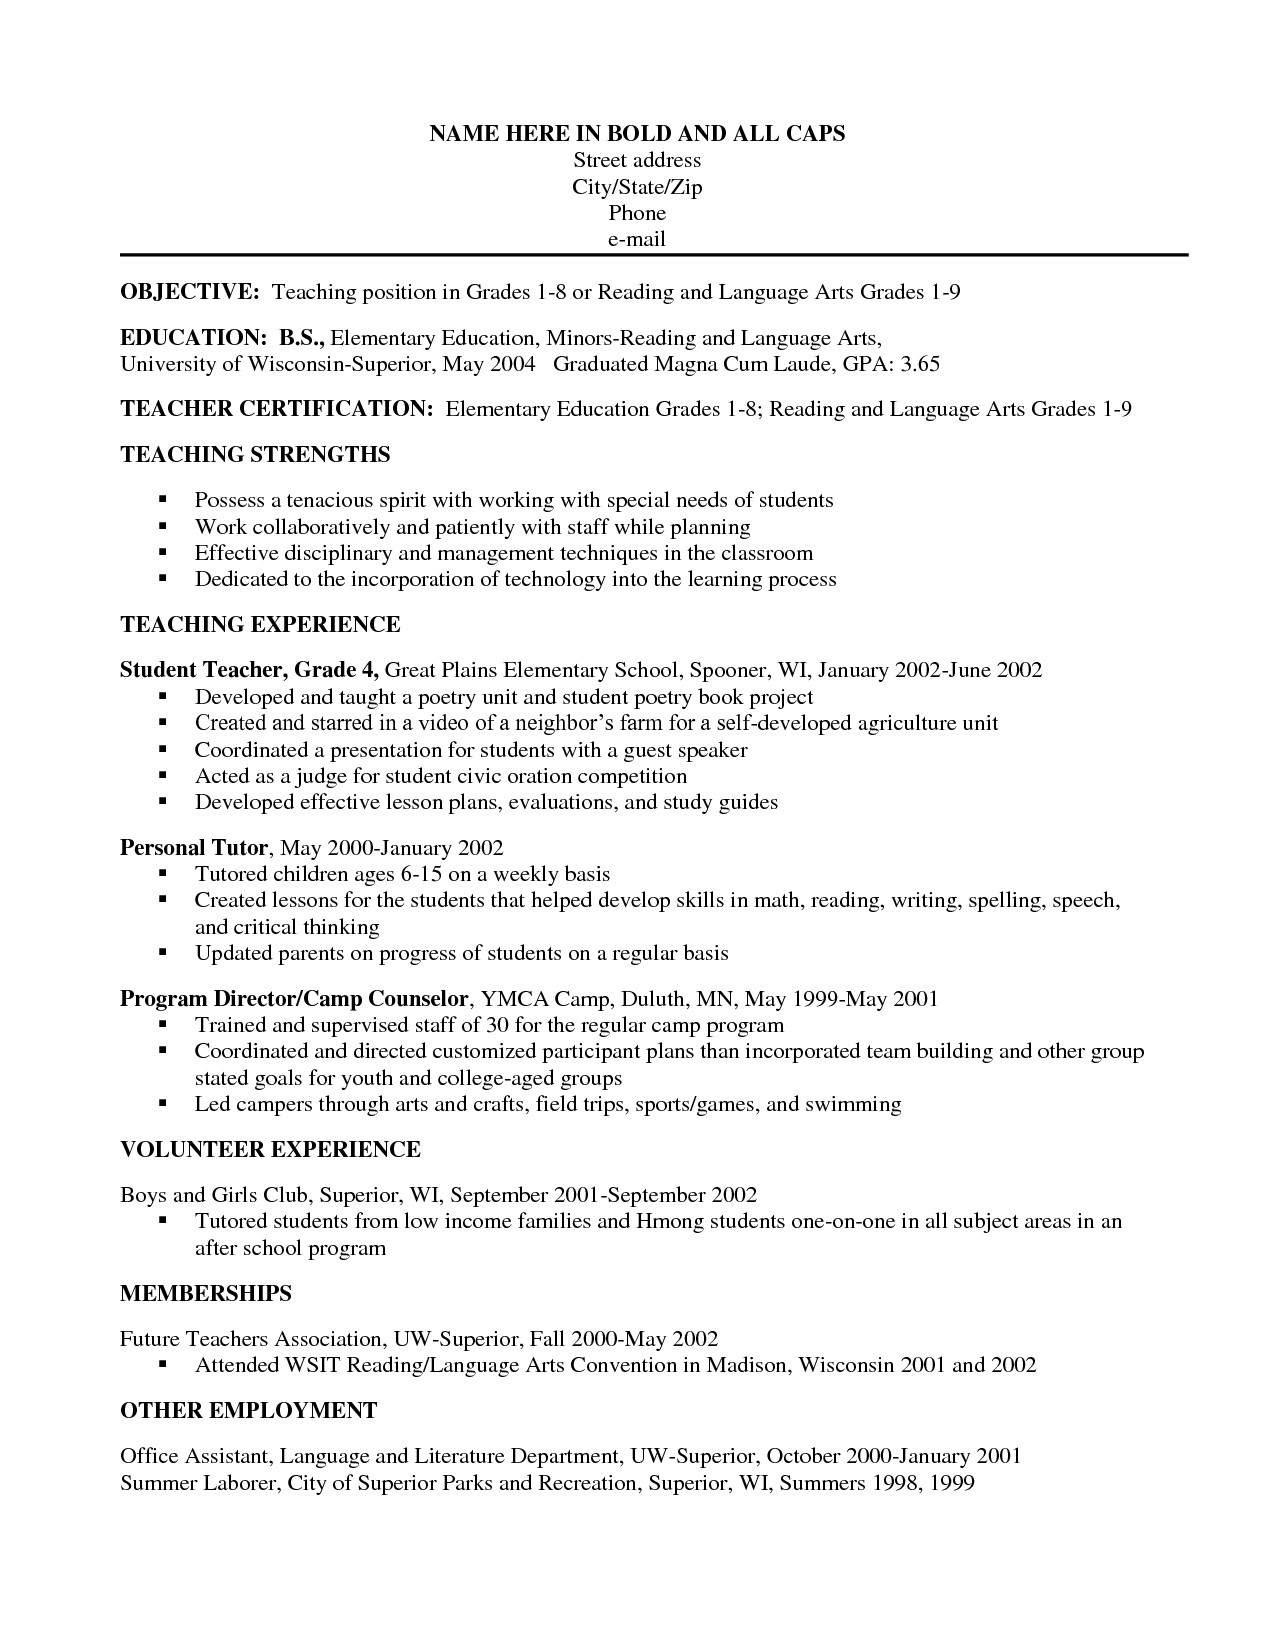 Teacher assistant Resume No Experience - Teacher assistant Resume with No Experience